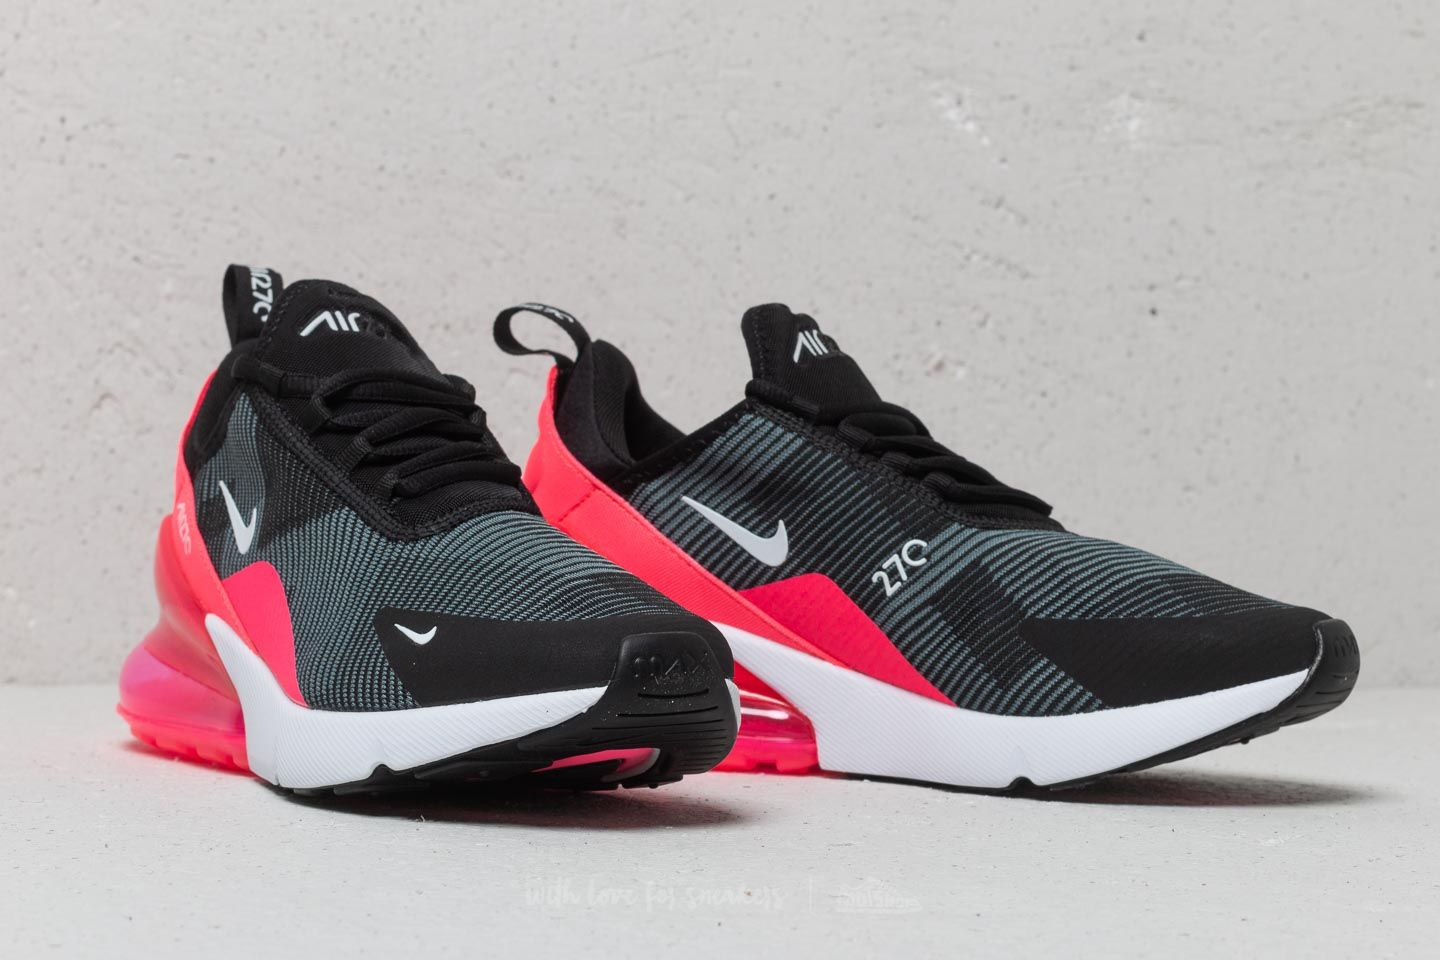 The kids model women gap Dis sneakers running shoes which Nike Air Max 270 Knit Jacquard GS Kie Ney AMAX 270 pink AR0302 003 adult can wear